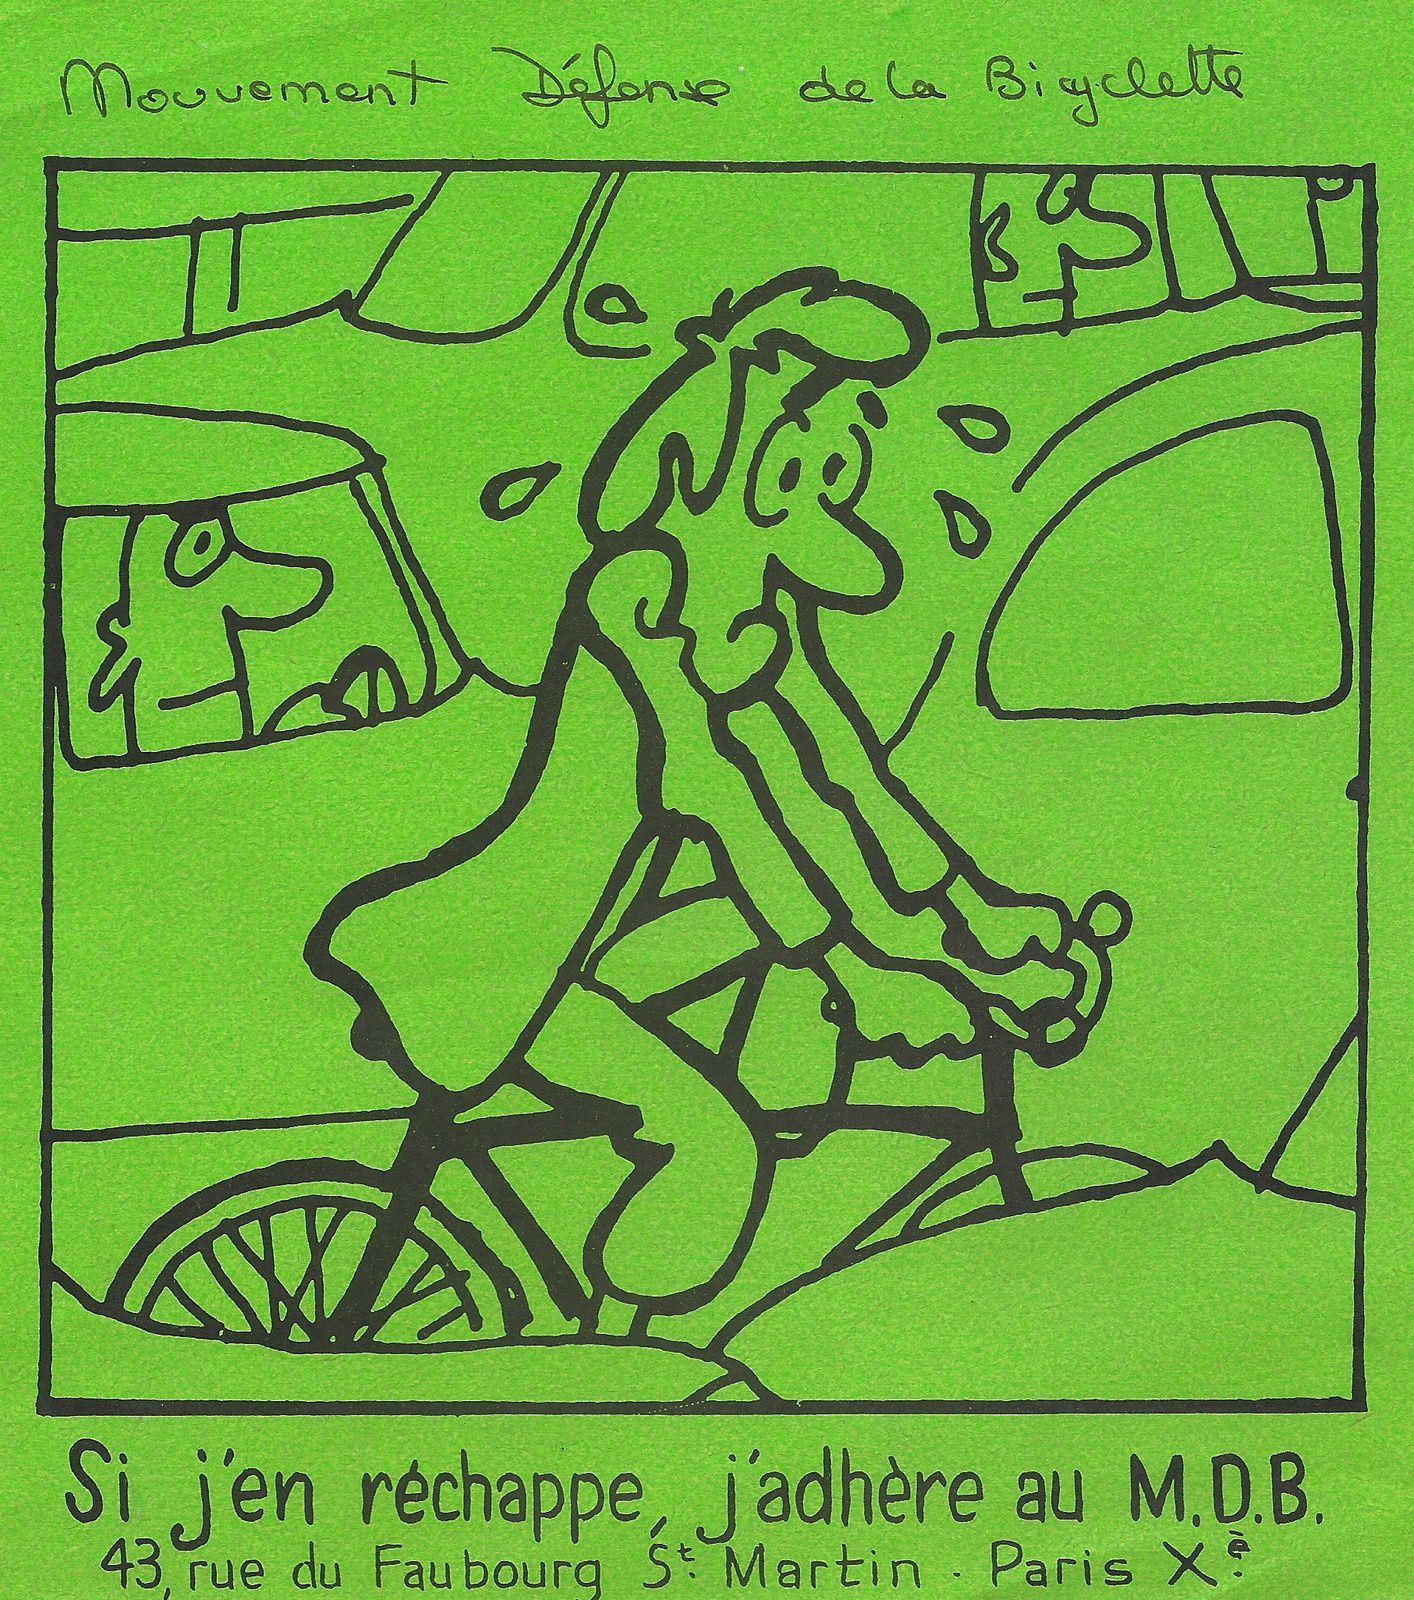 Tract du M.D.B. (Mouvement de Défense de la Bicyclette)